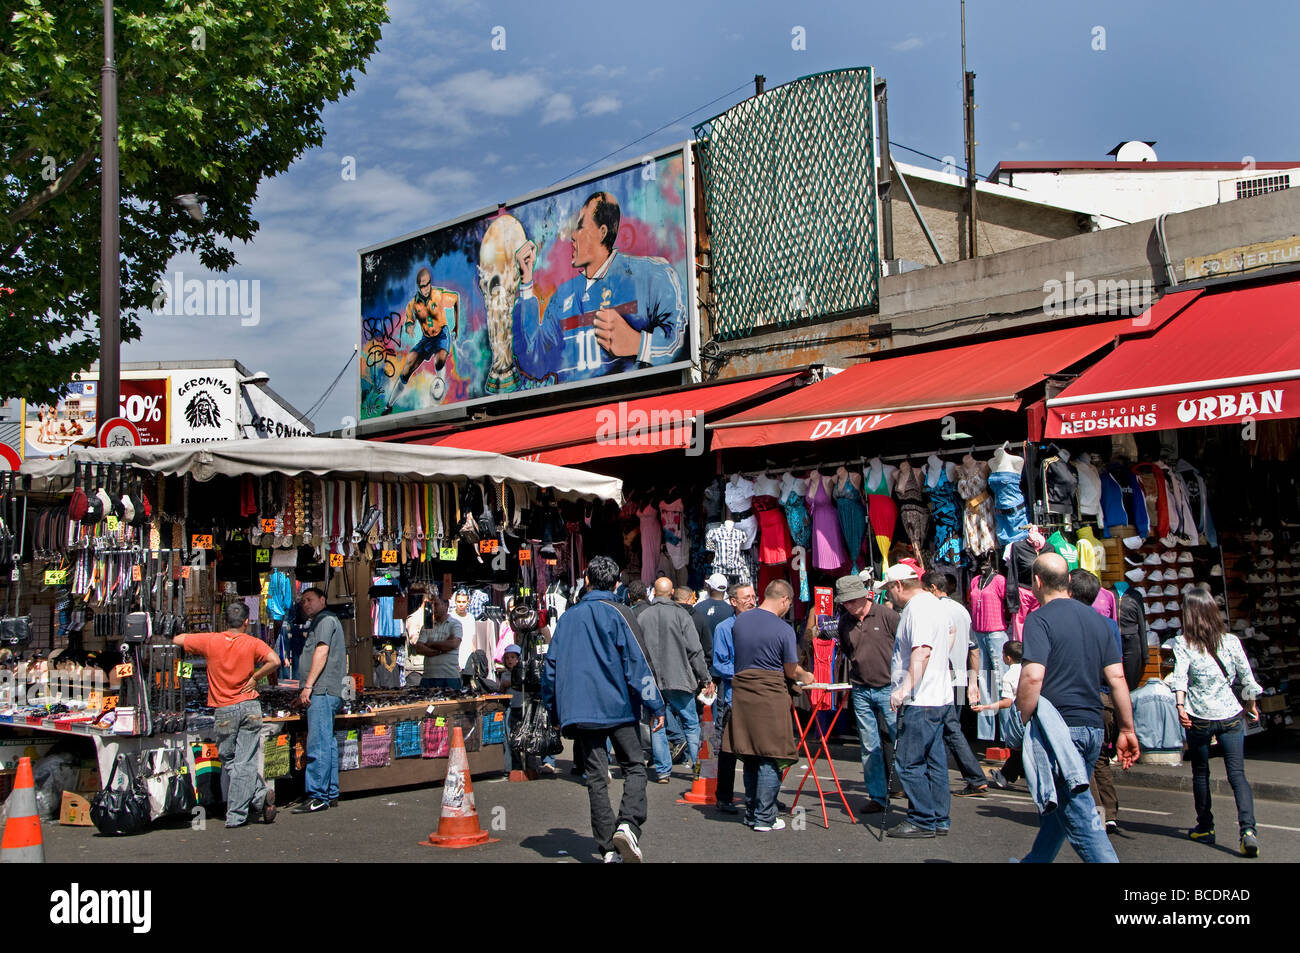 marche aux puces de saint ouen flea market paris stock photo royalty free image 24889941 alamy. Black Bedroom Furniture Sets. Home Design Ideas